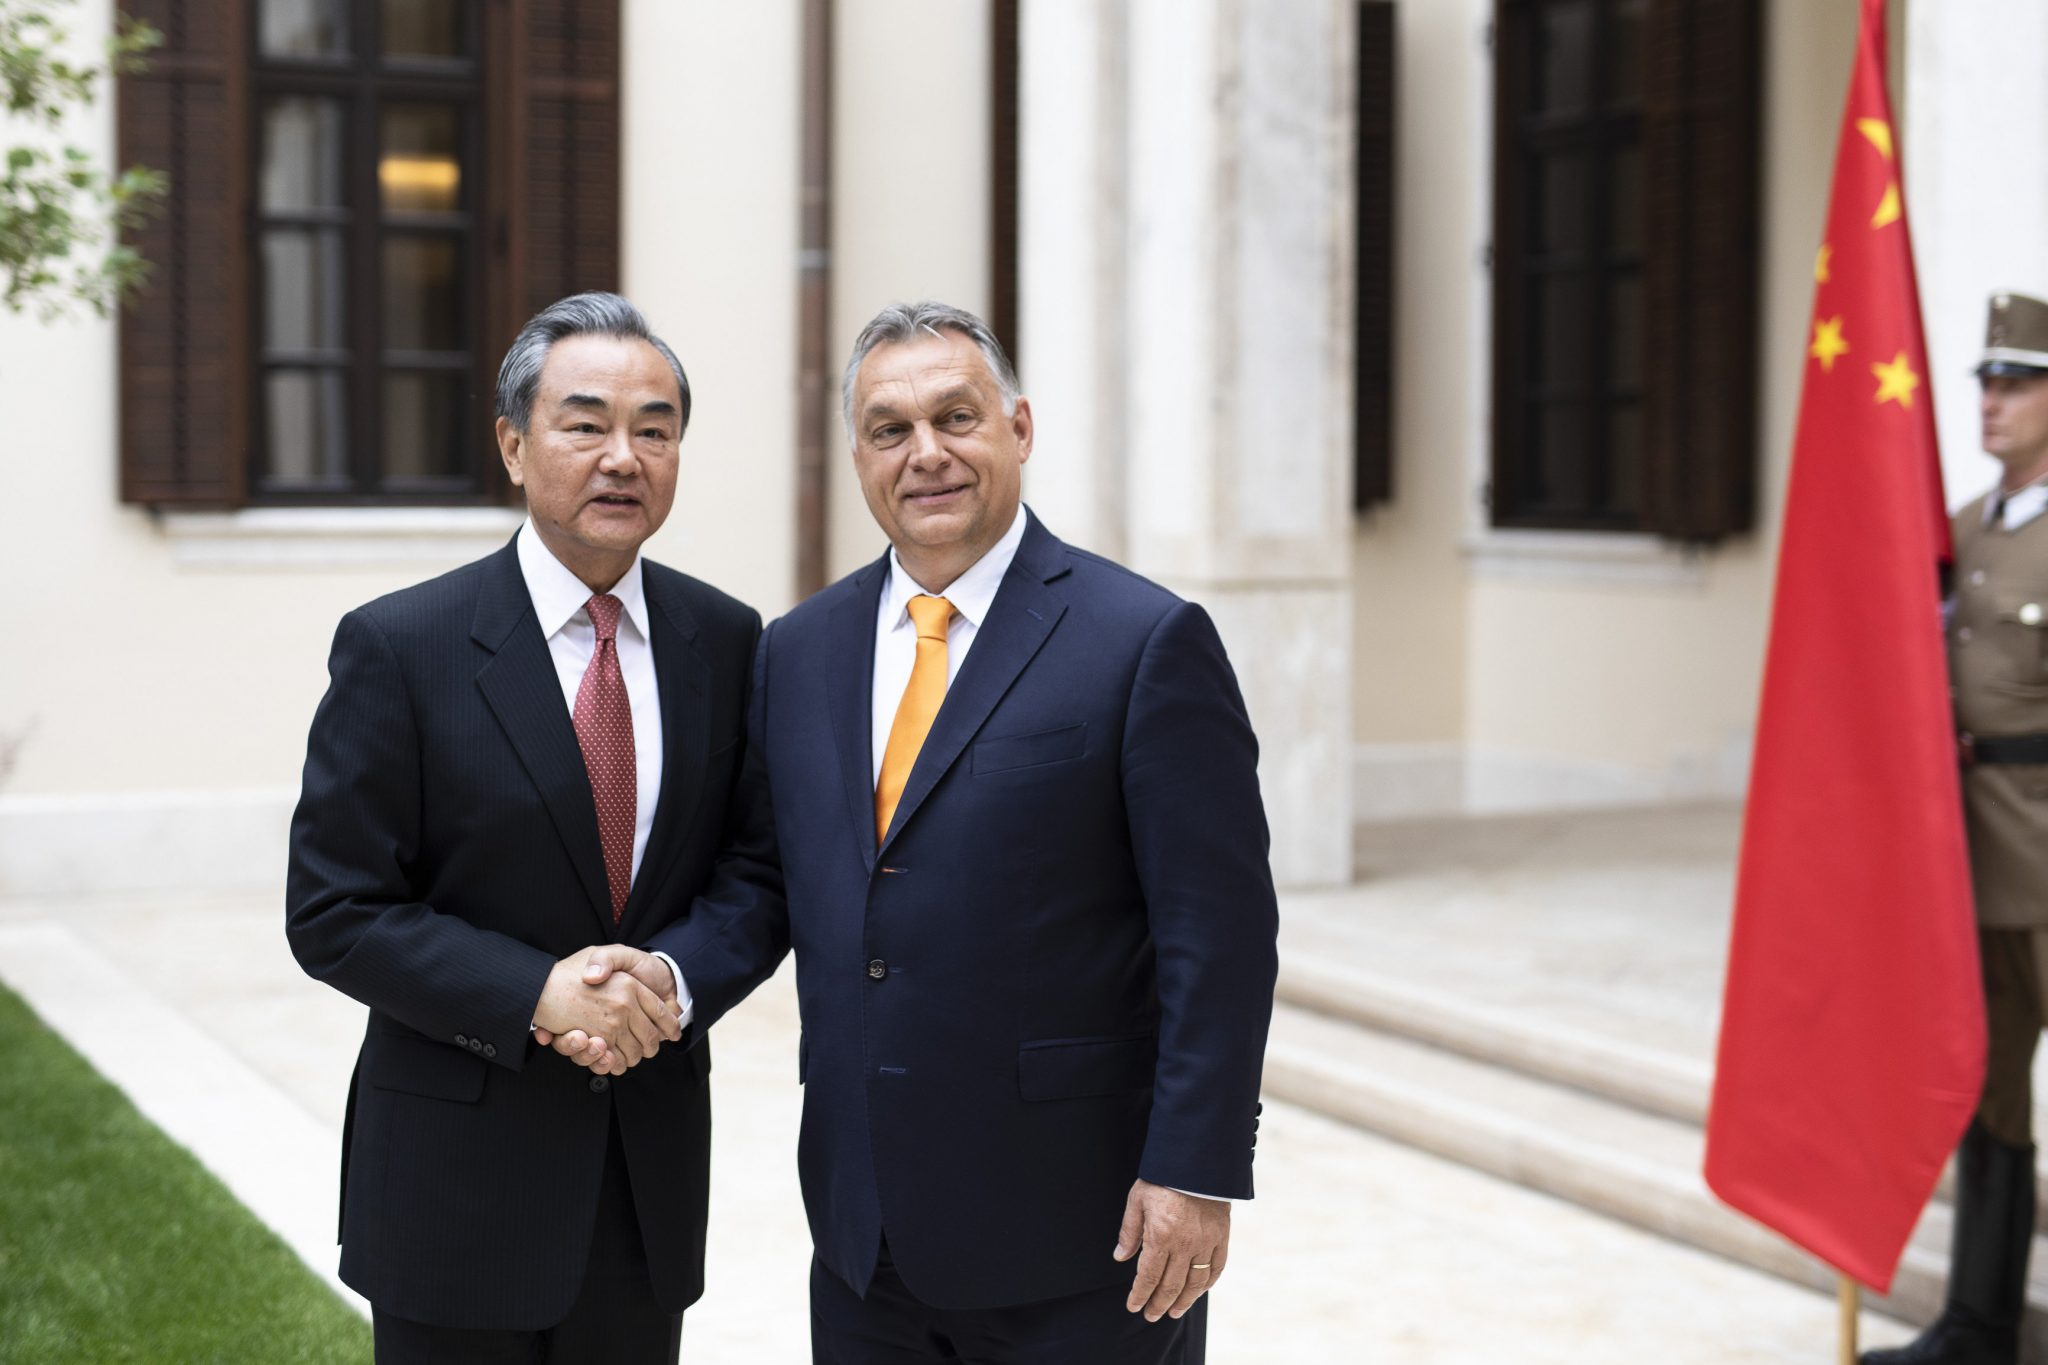 Orbán Meets Chinese Foreign Minister, Praises Friendship and Partnership post's picture